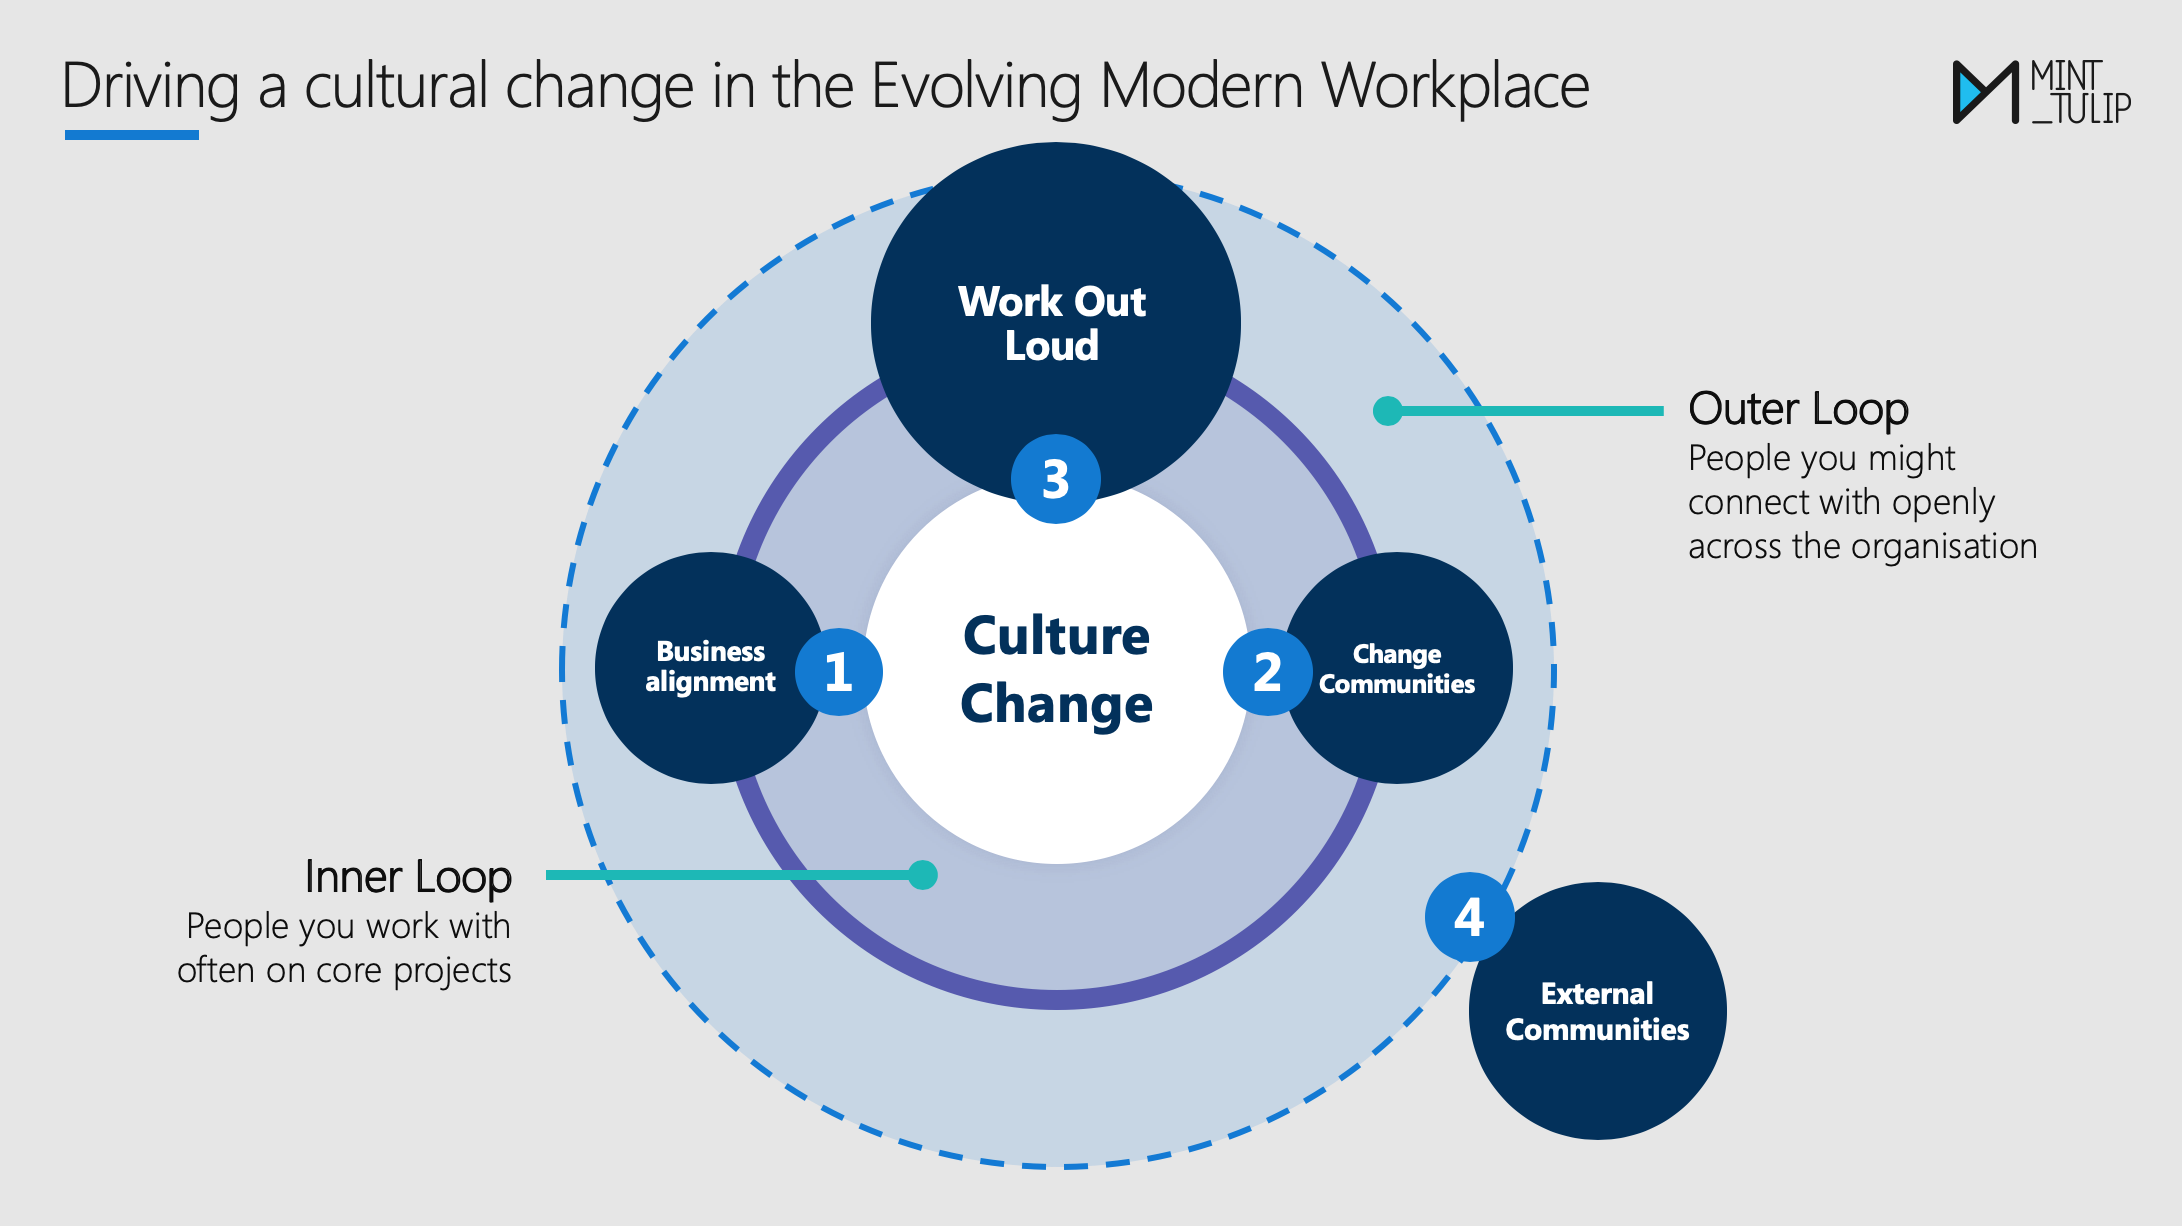 The evolving modern workplace